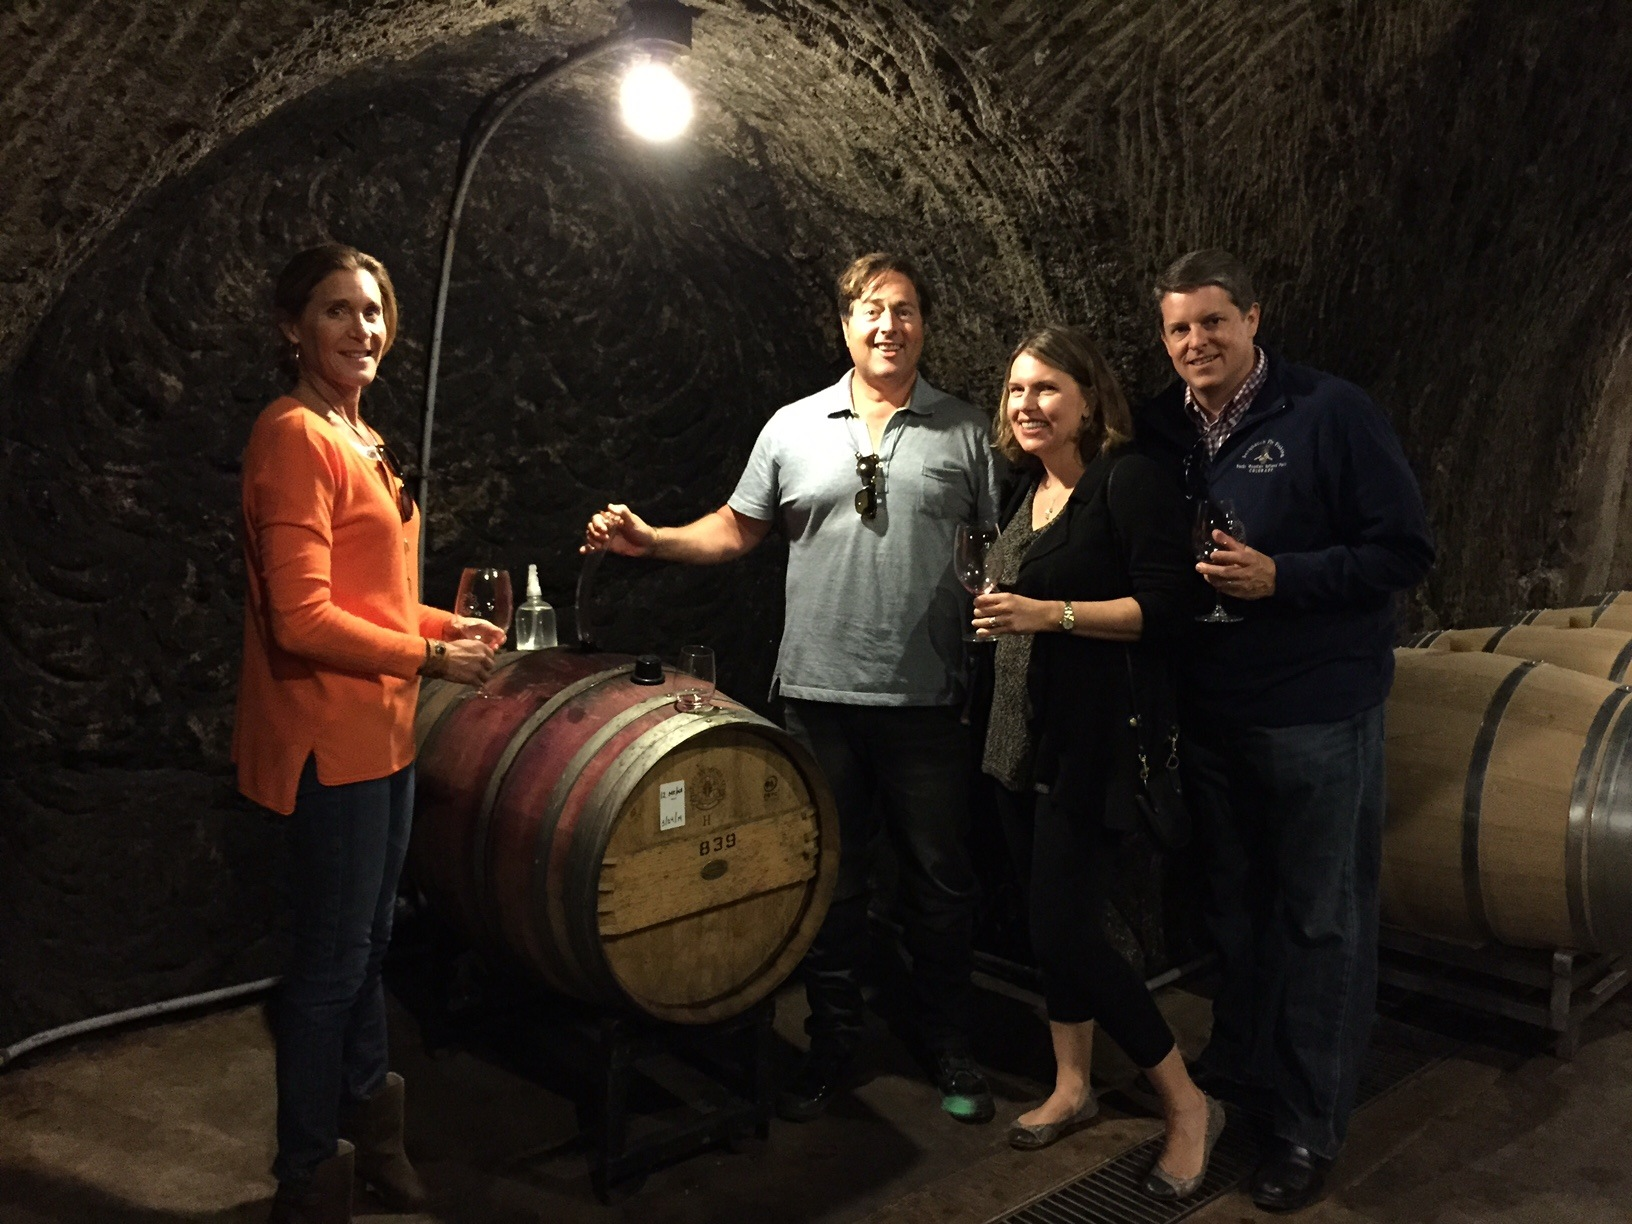 Repris Winery Caves - Booker and Butler Concierges